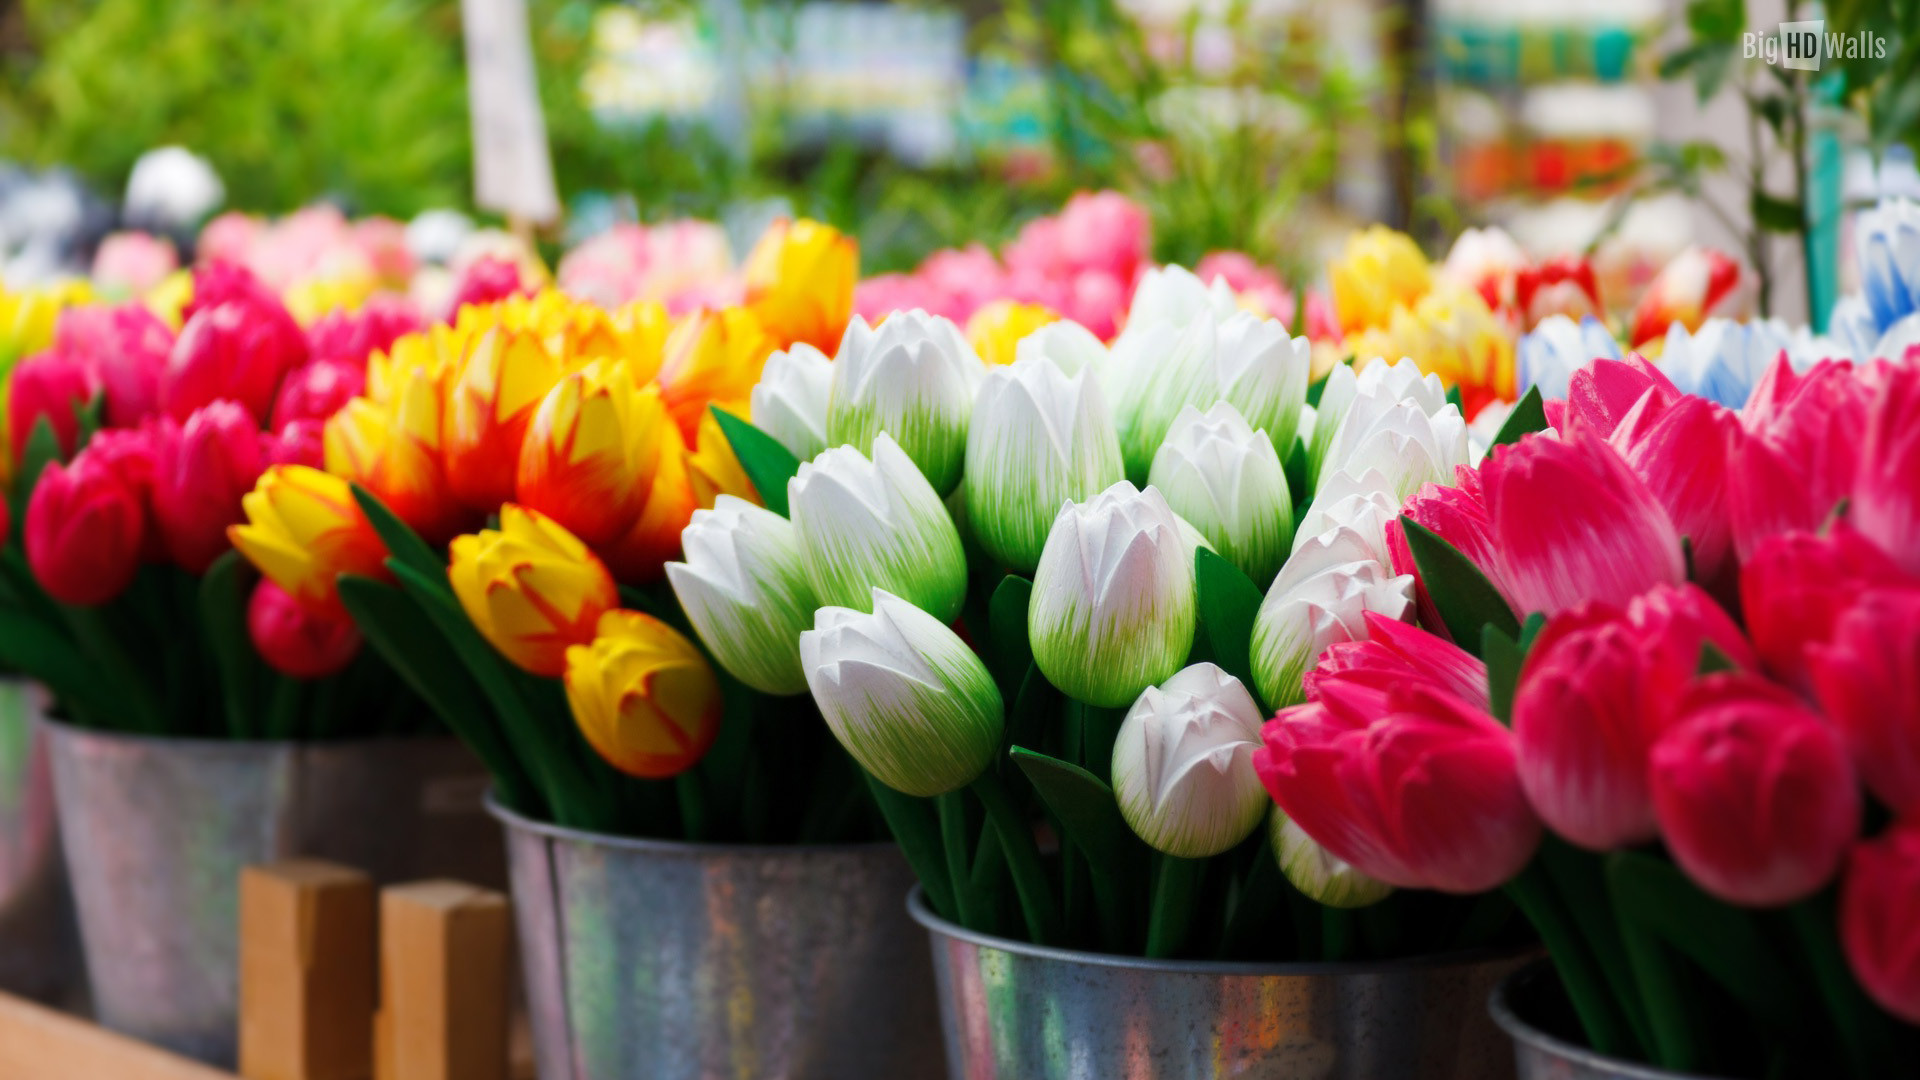 Tulips Background Wallpaper (70+ Images